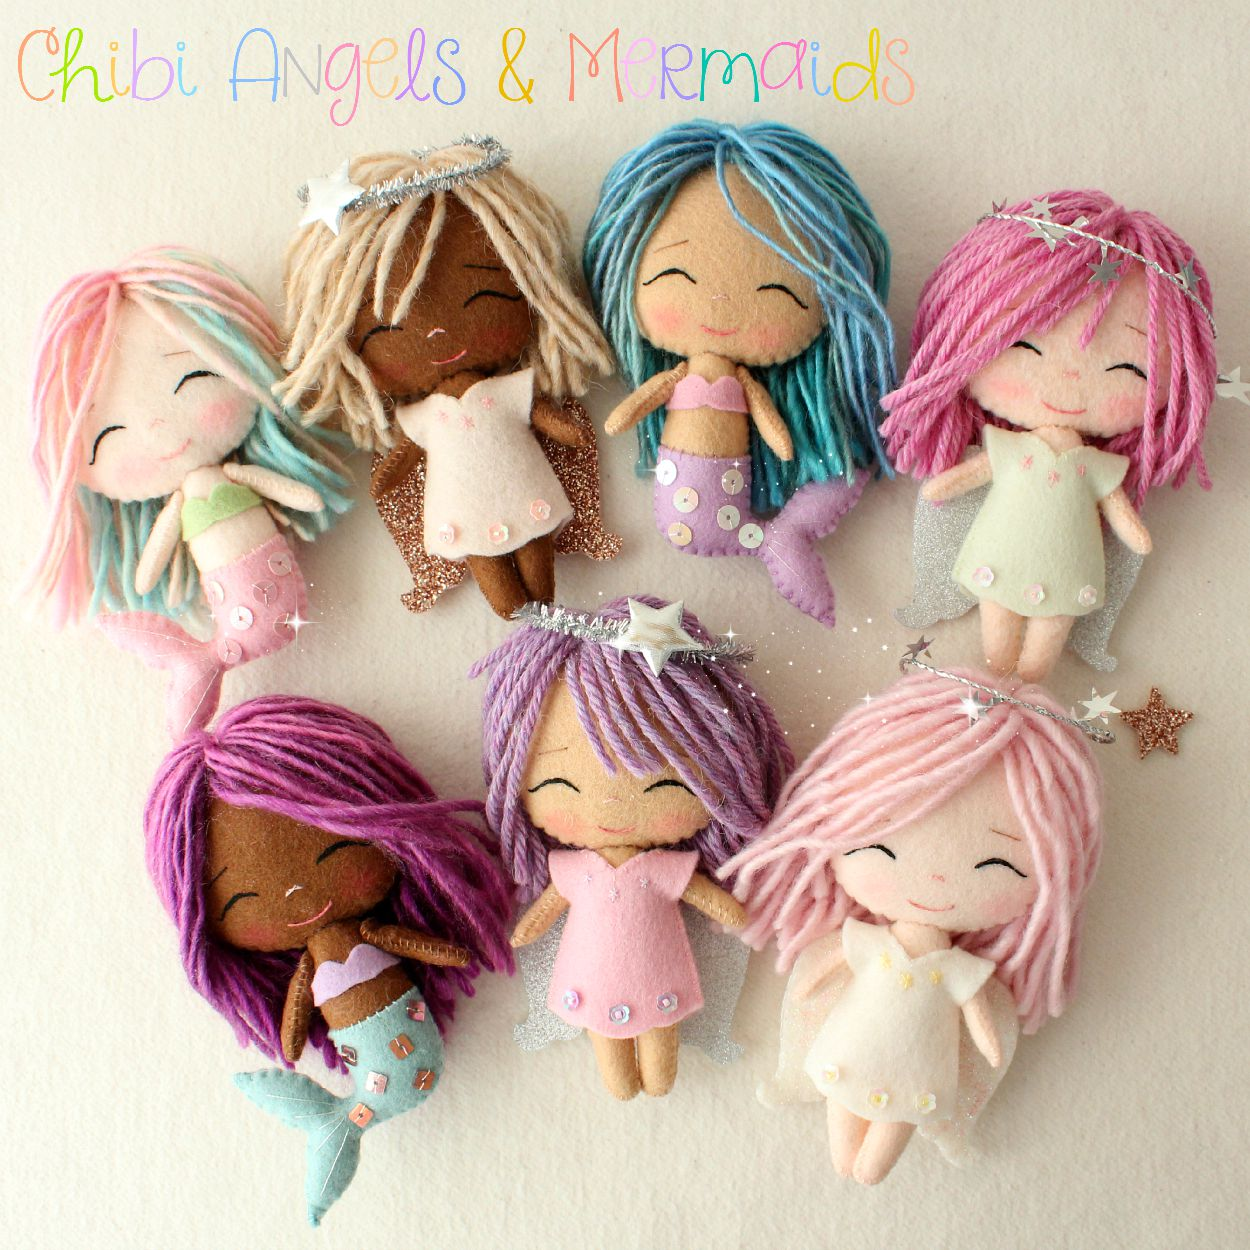 Chibi Angels and Mermaids